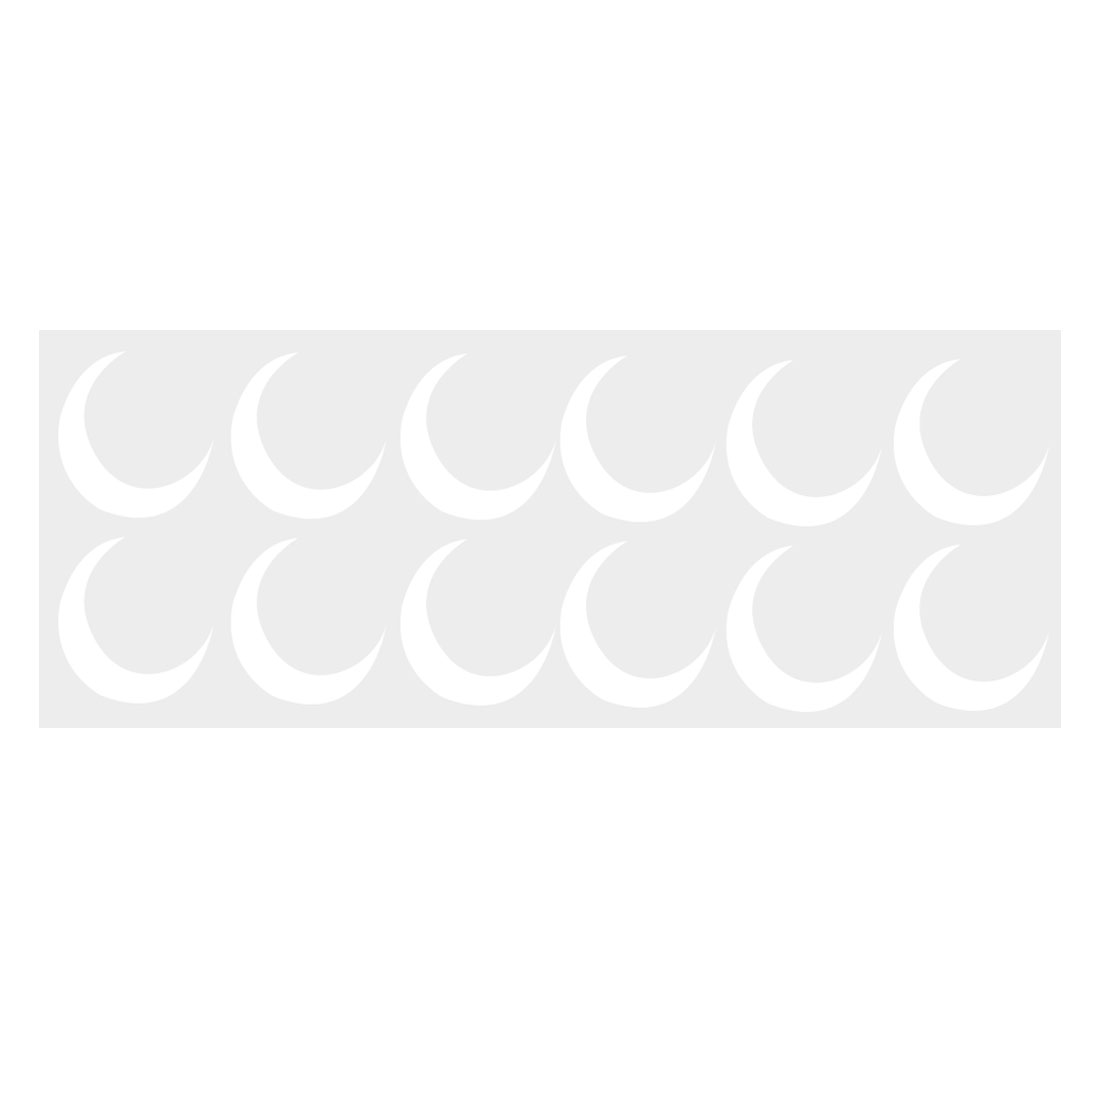 White Crescent Shape Self-stick Wall Stickers Artificial Decal for Bedroom 12pcs